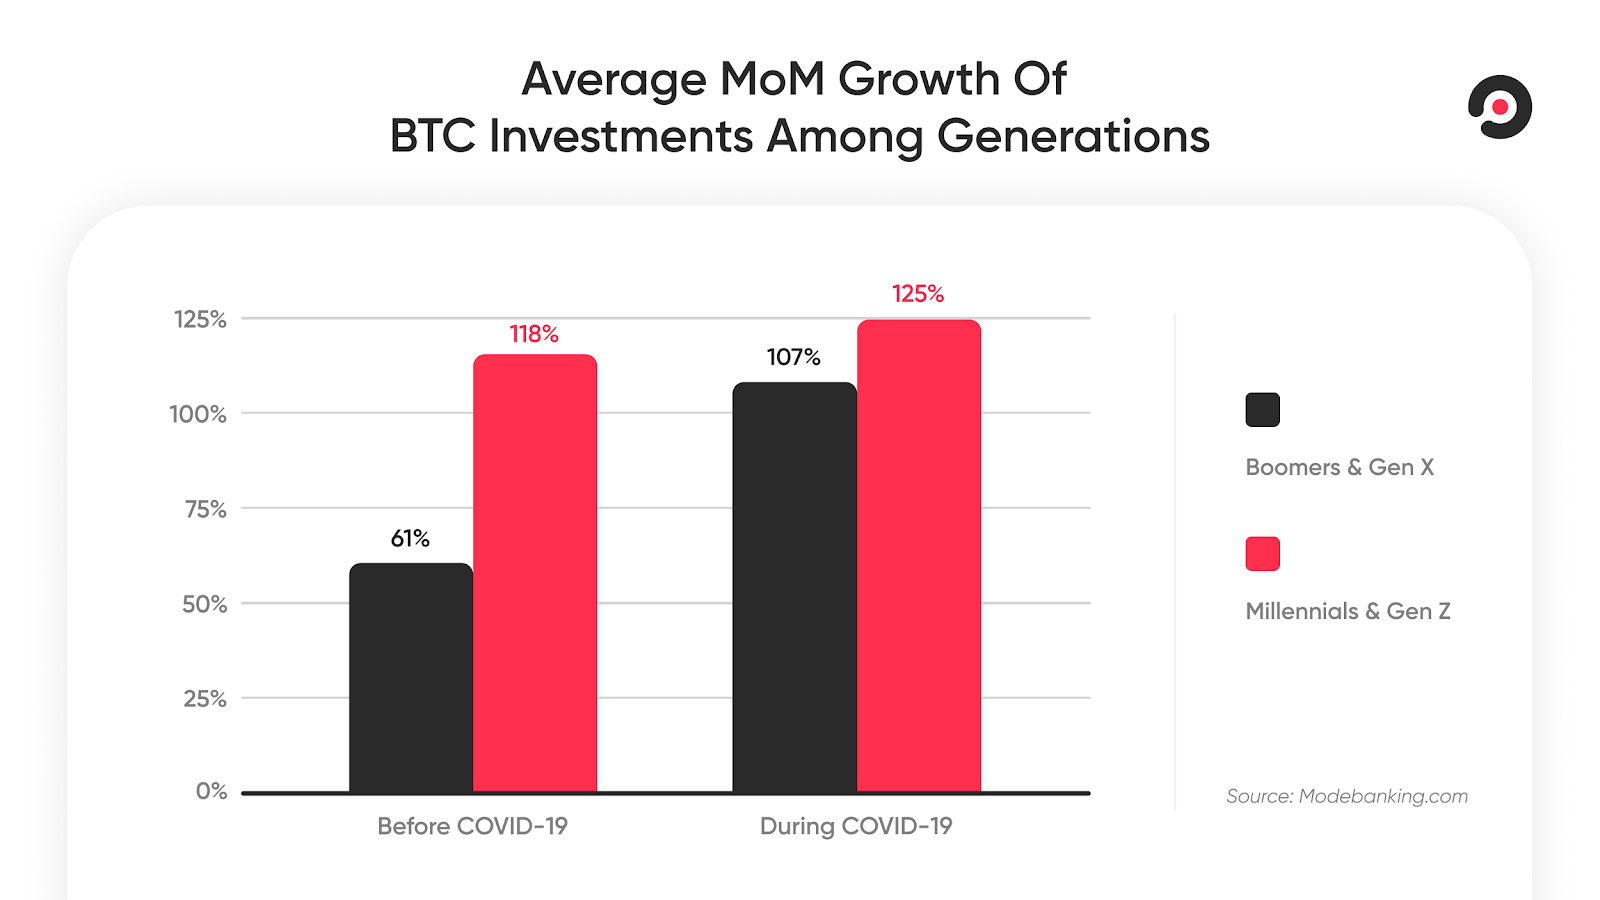 The investment gap between the generations closes